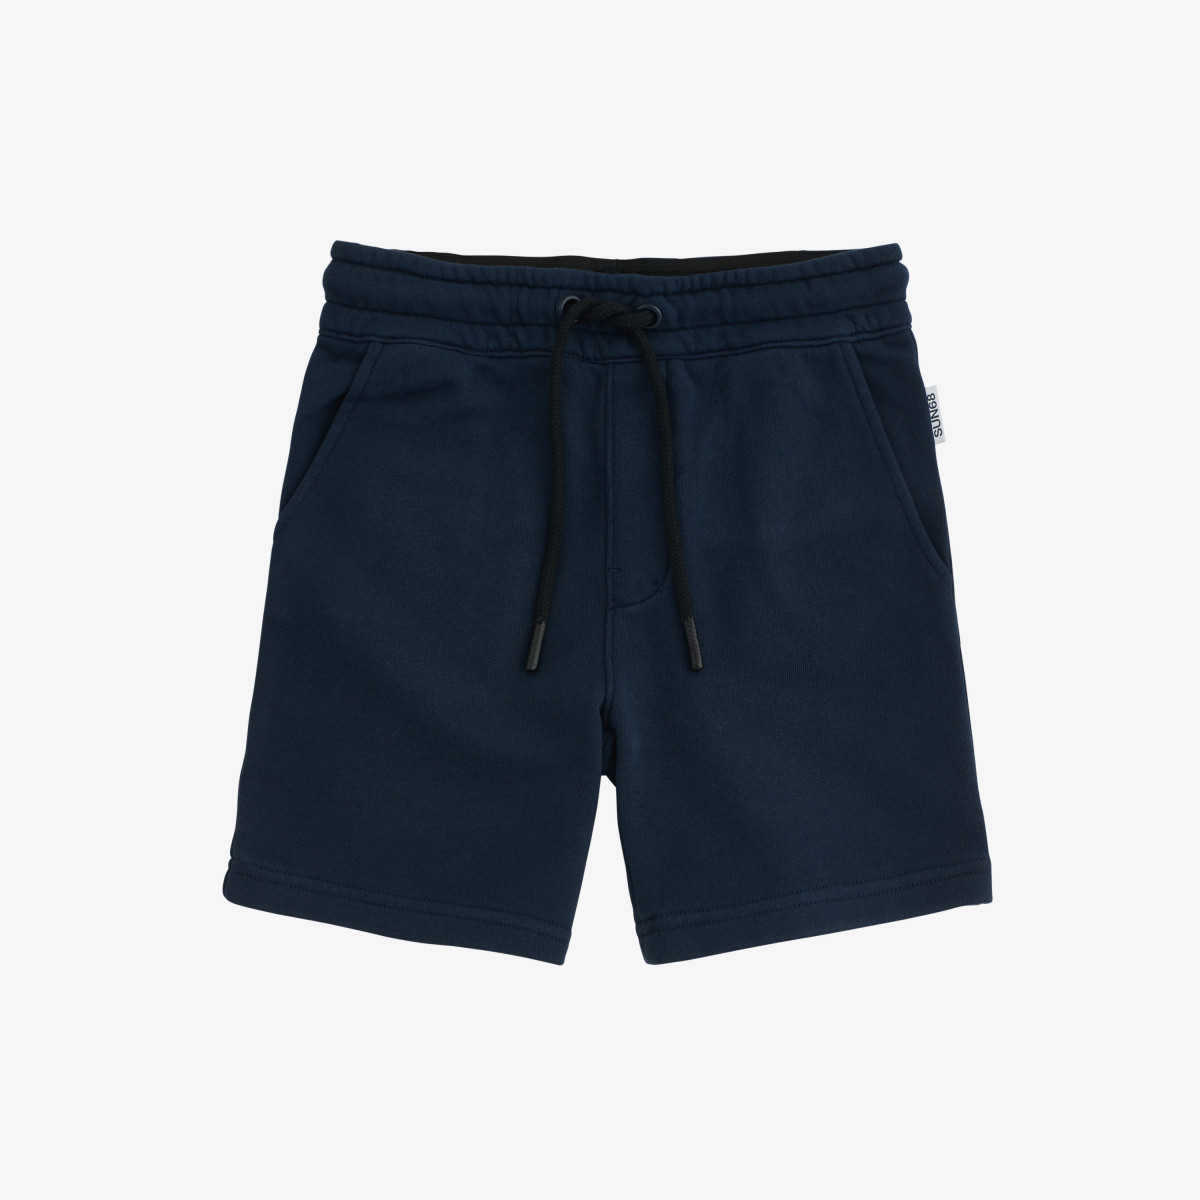 PANT SHORT COTT. FL. NAVY BLUE